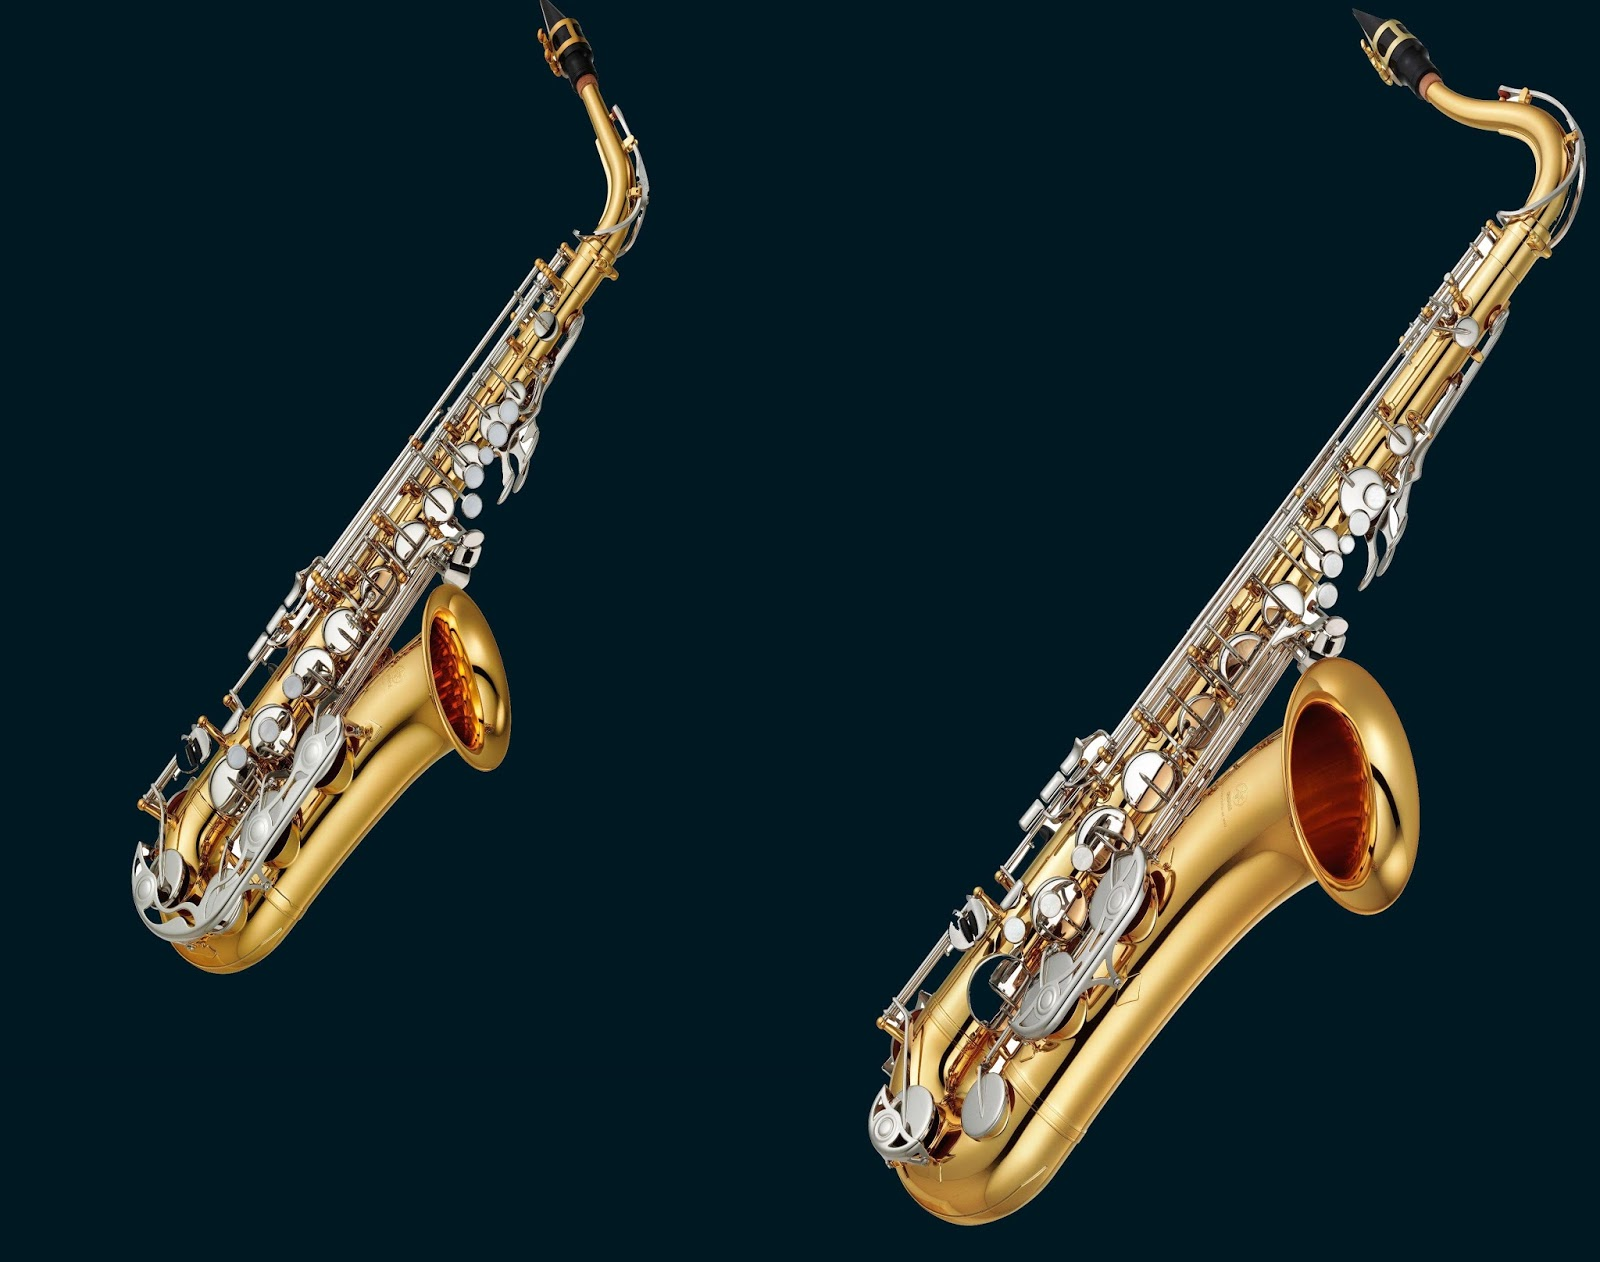 The saxophone corner the new golden age of saxophone for Yamaha student saxophone